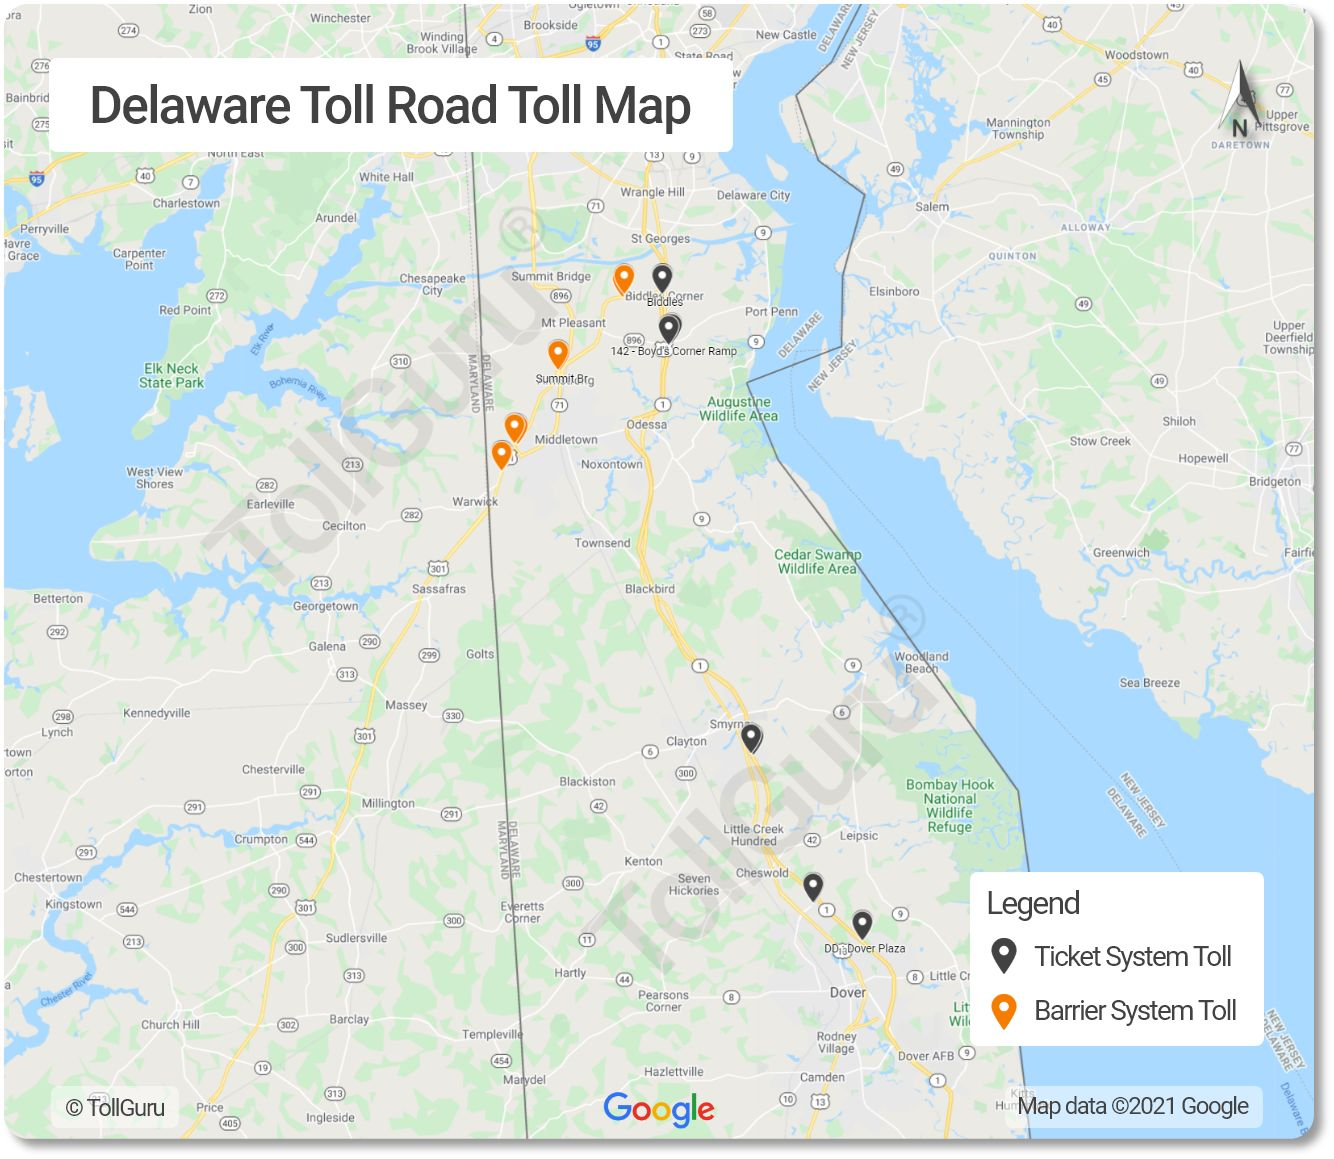 Toll booth locations on the Delaware Toll Roads consisting of Korean War Veterans Memorial and John F Kennedy Memorial Highways.